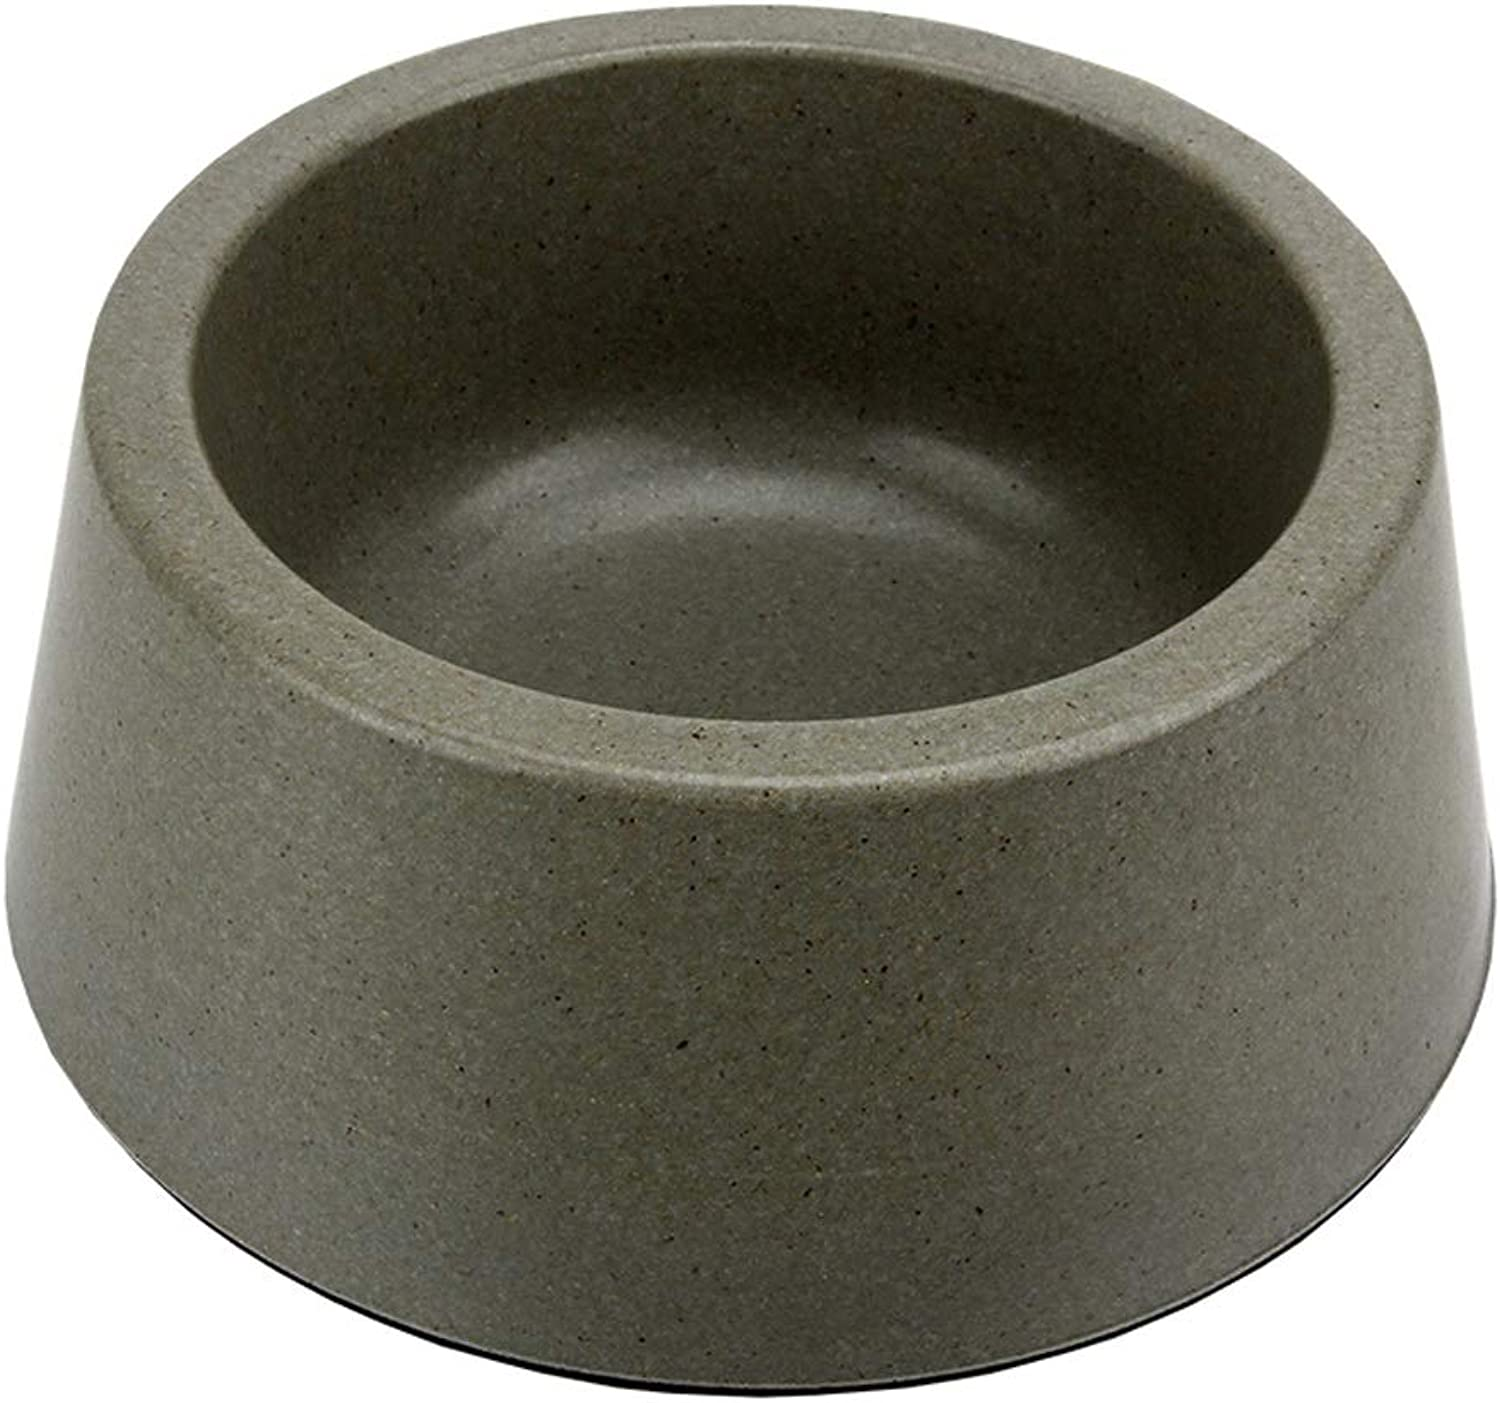 KTYX Puppy Cat Bowl Round NonSlip Pet Bowl (Military Green) Pet Bowl (Size   S)